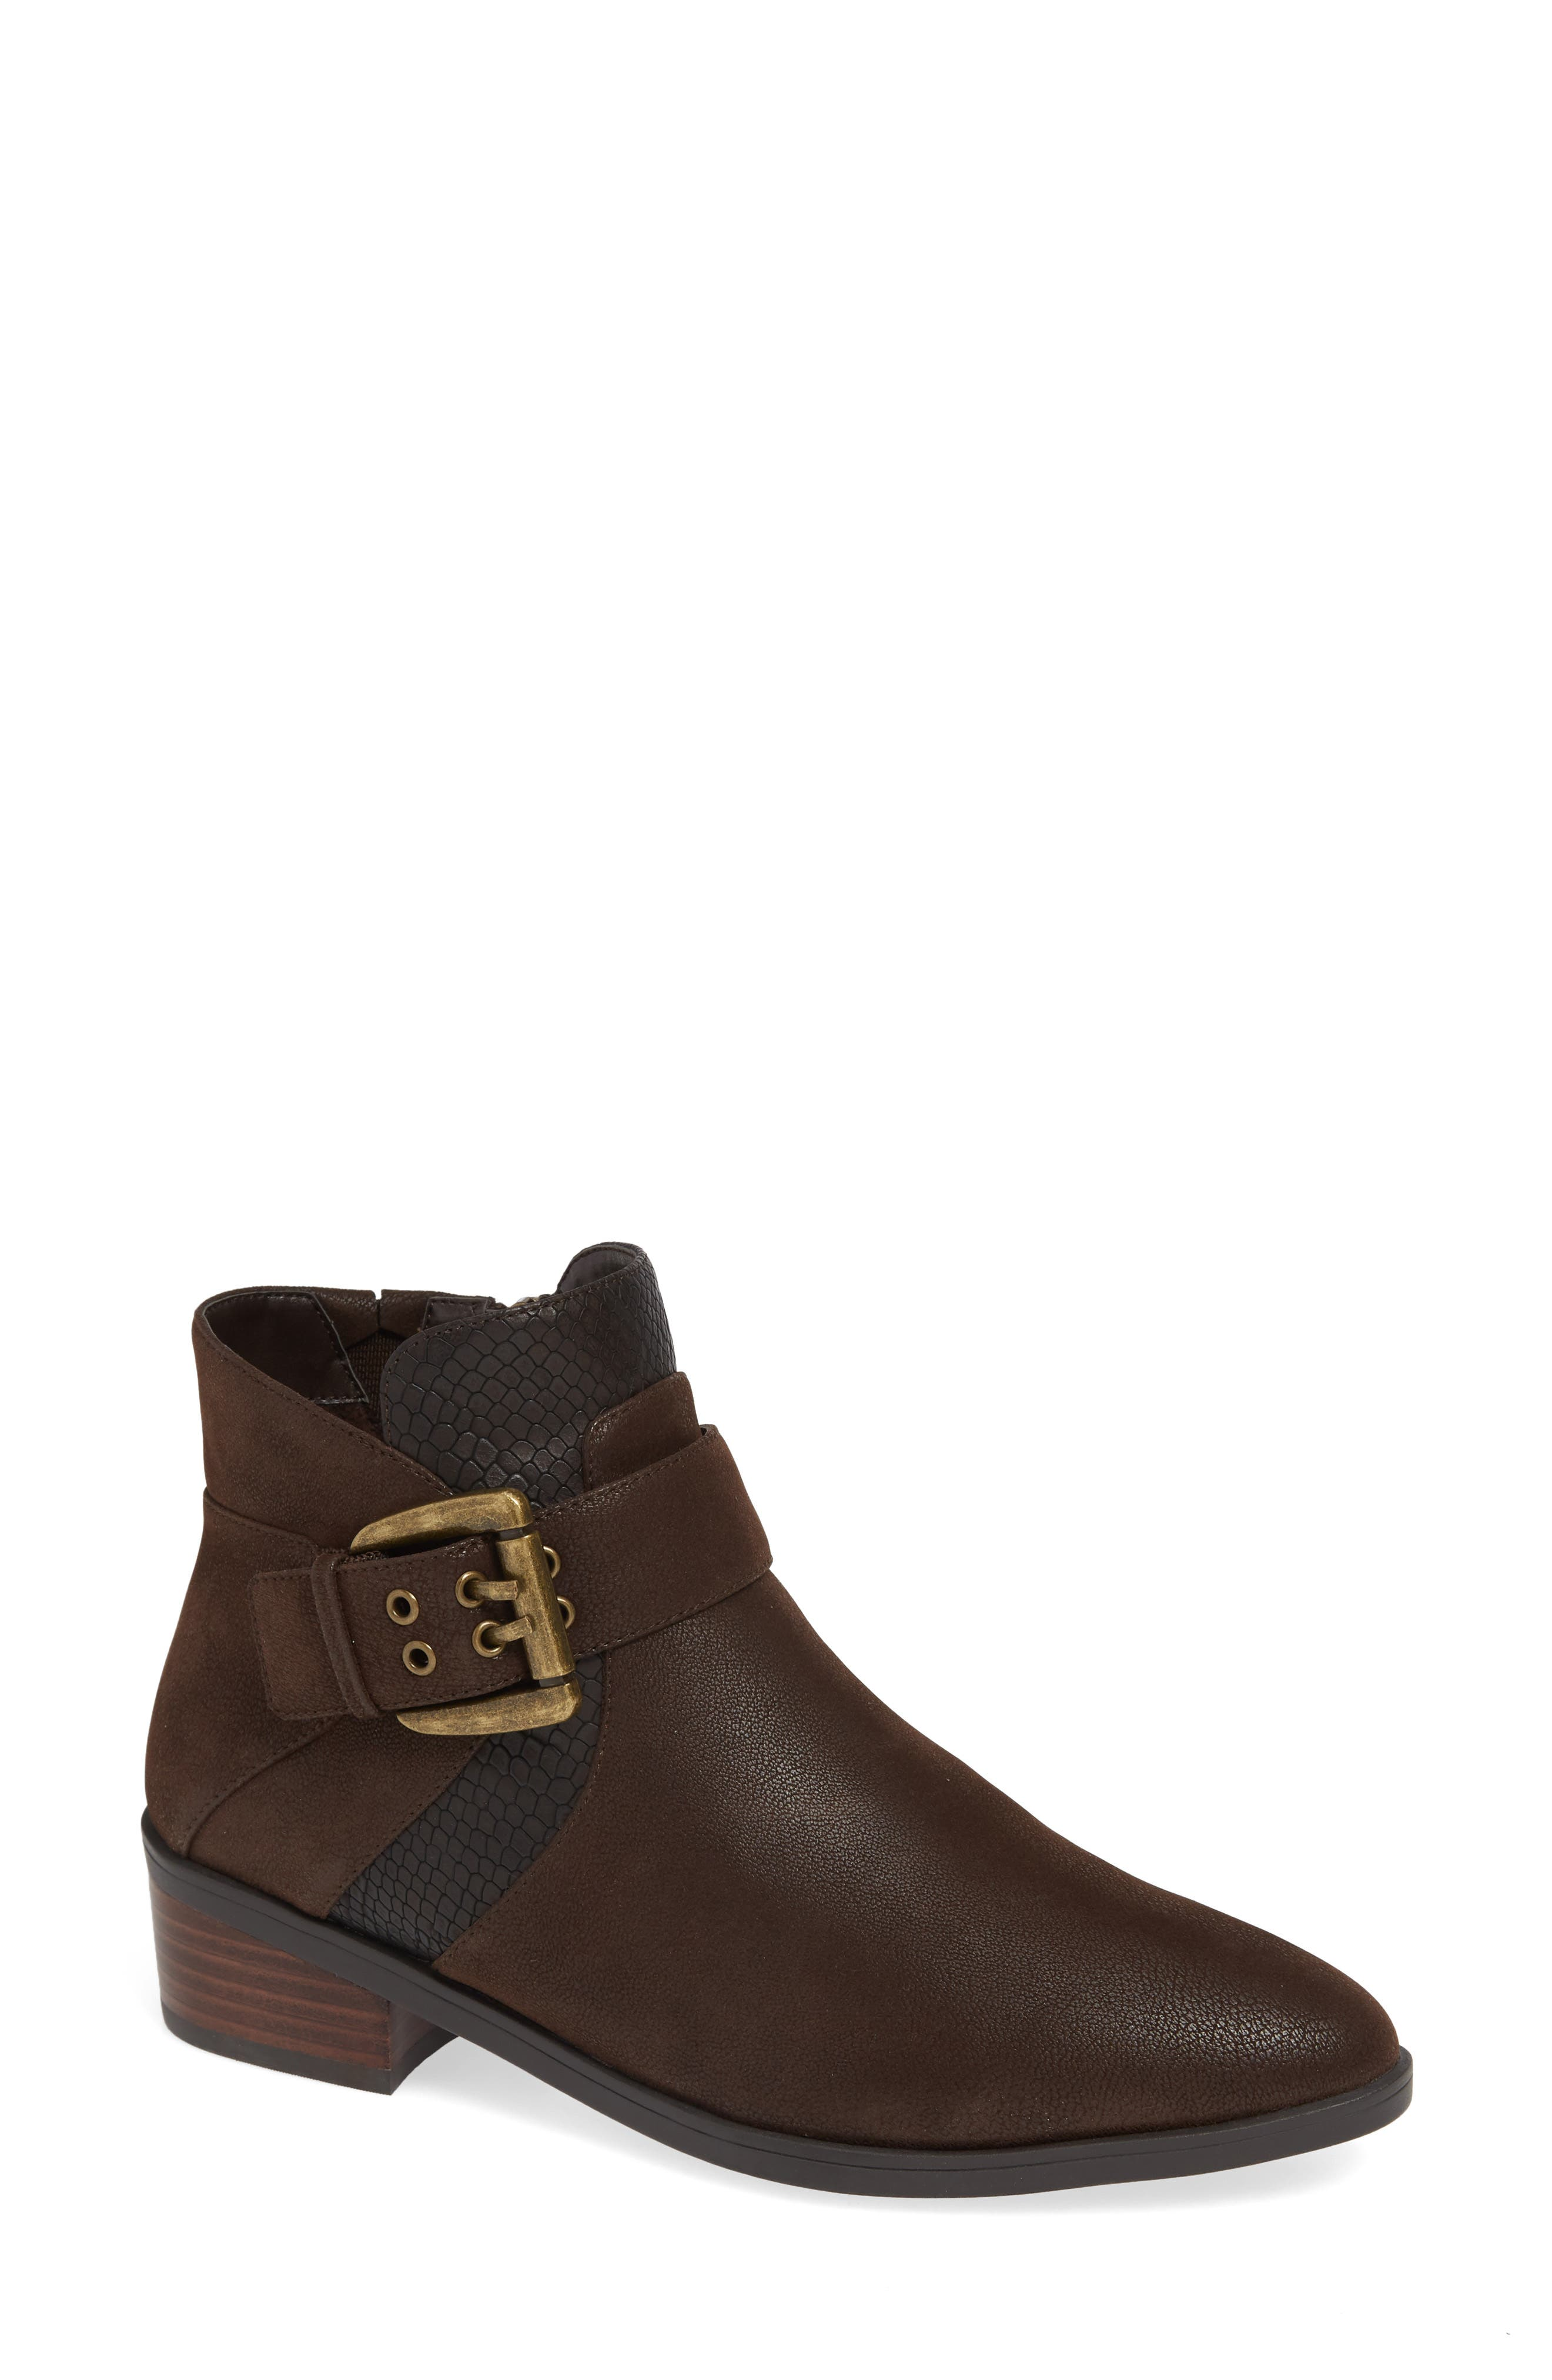 Honor II Bootie,                             Main thumbnail 1, color,                             BROWN LEATHER